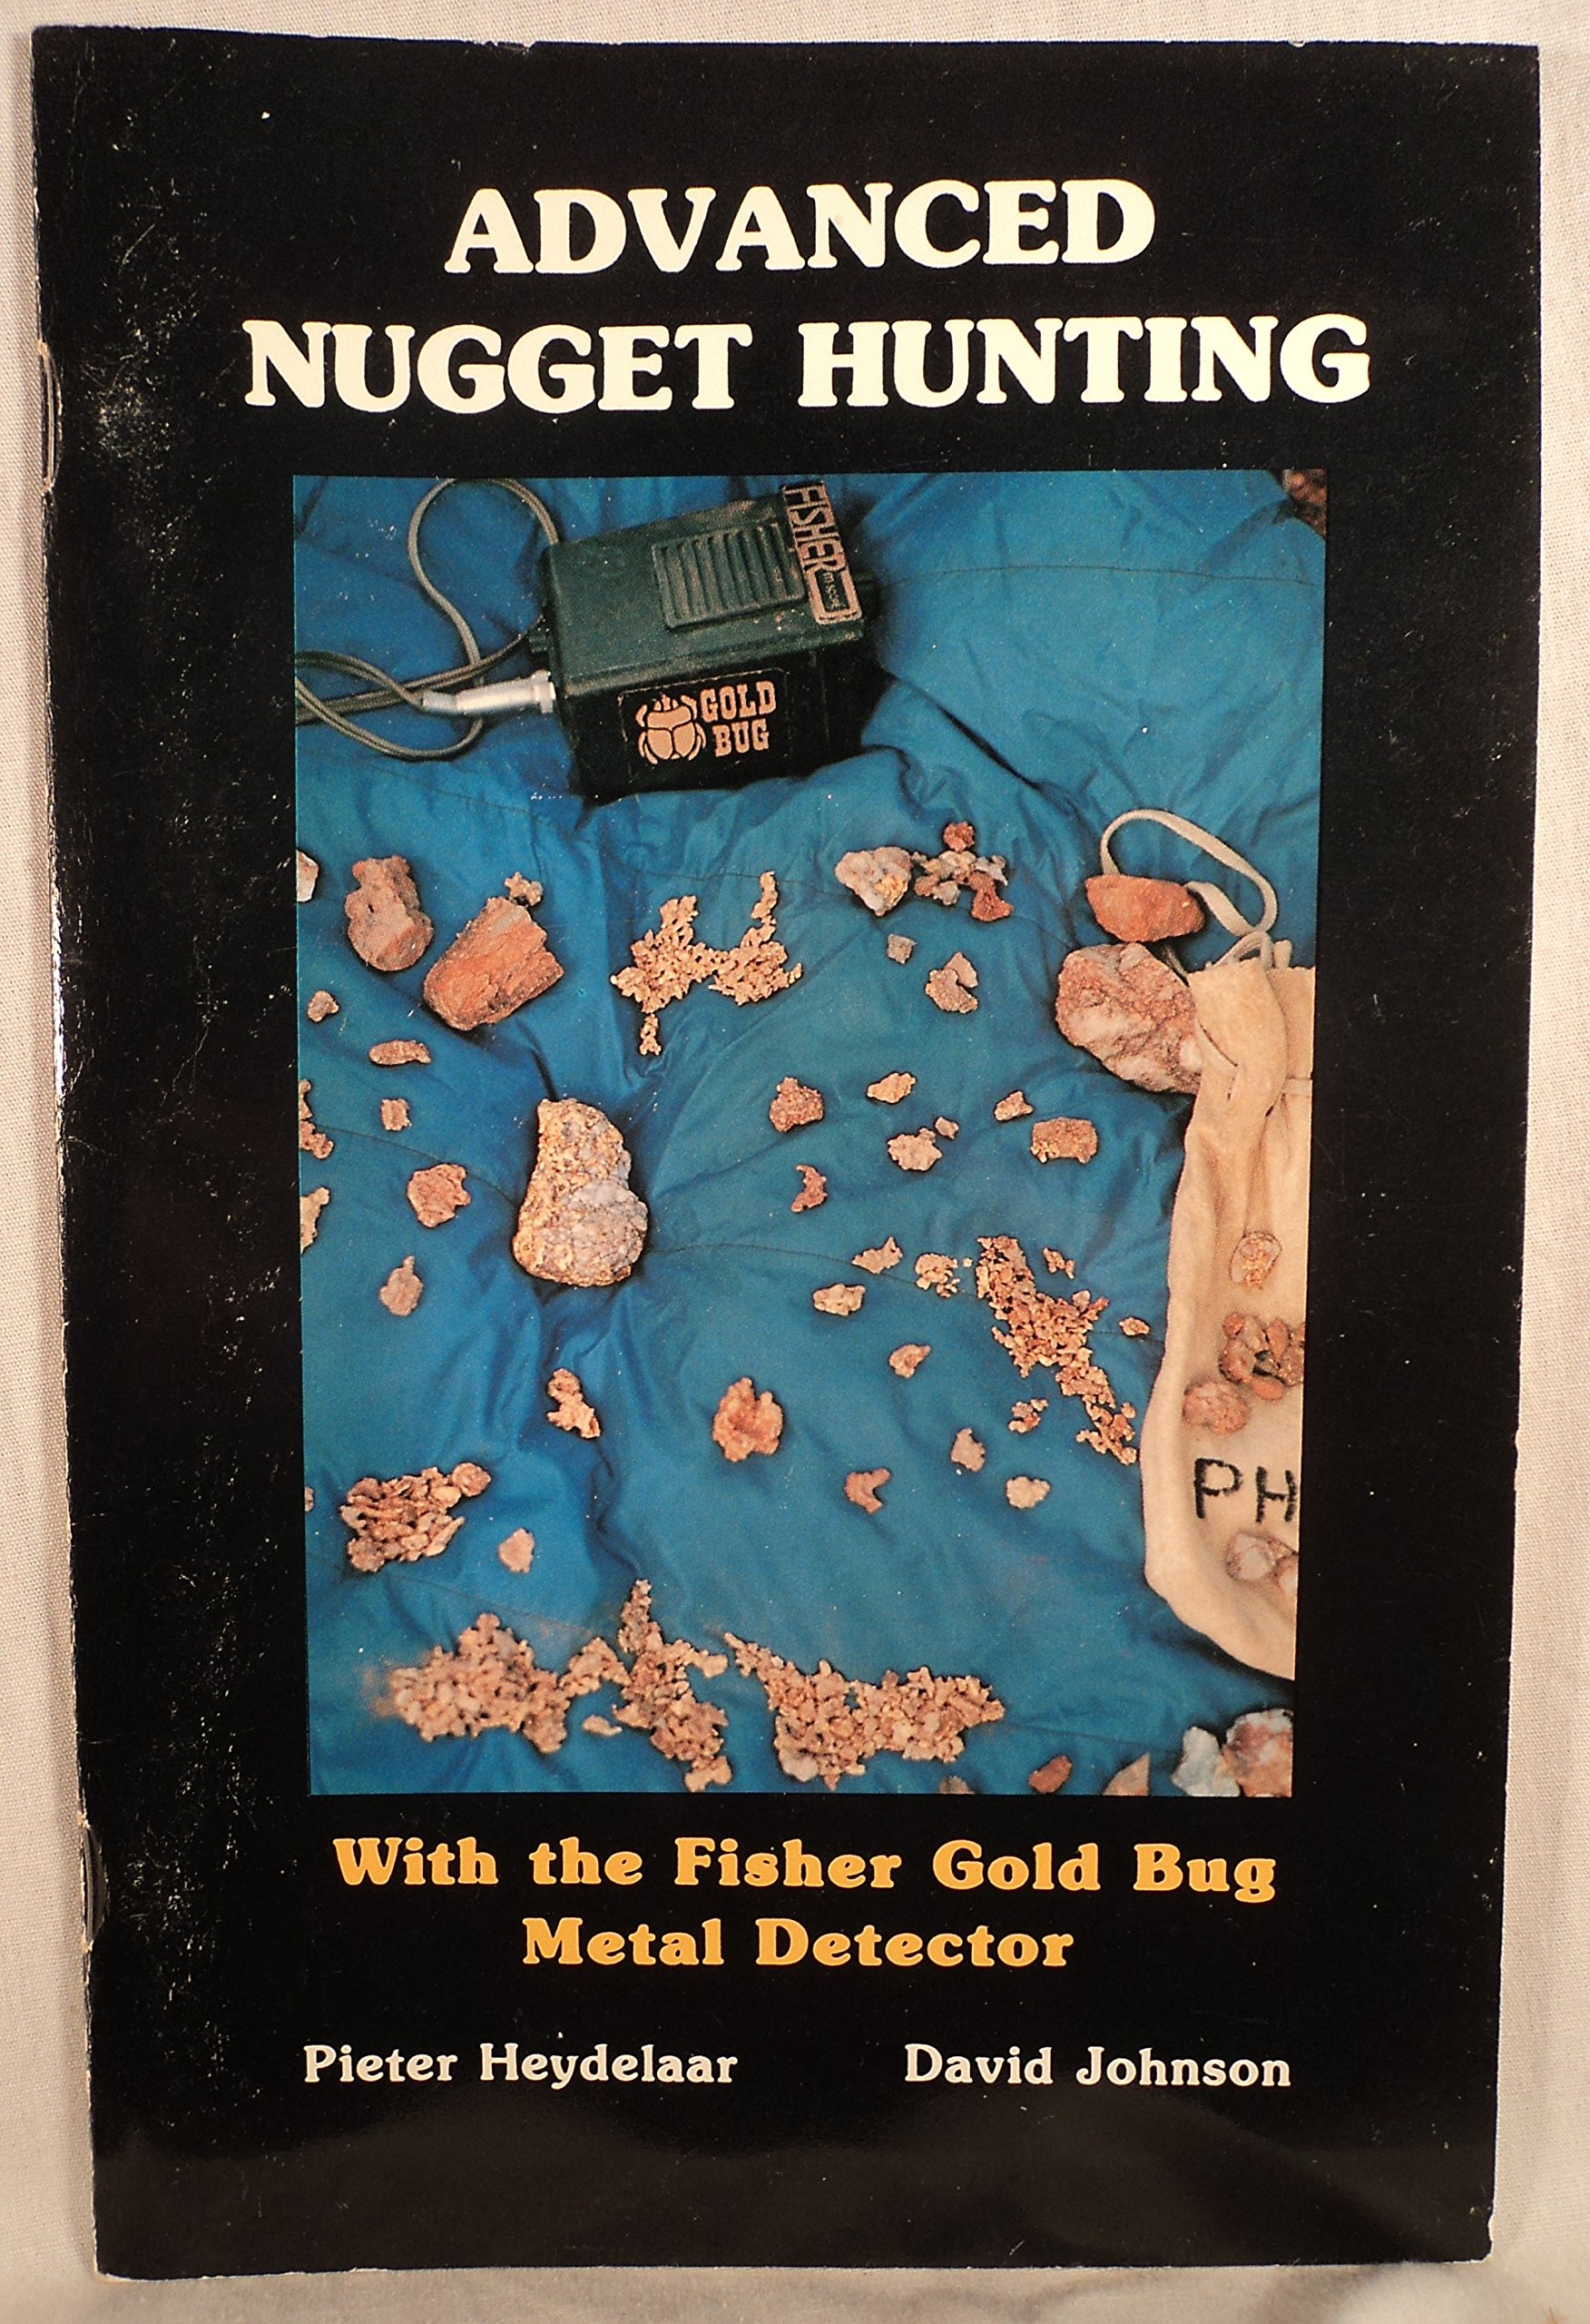 Advanced Nugget Hunting with the Fisher Gold Bug Metal Detector Paperback – January 1, 1996